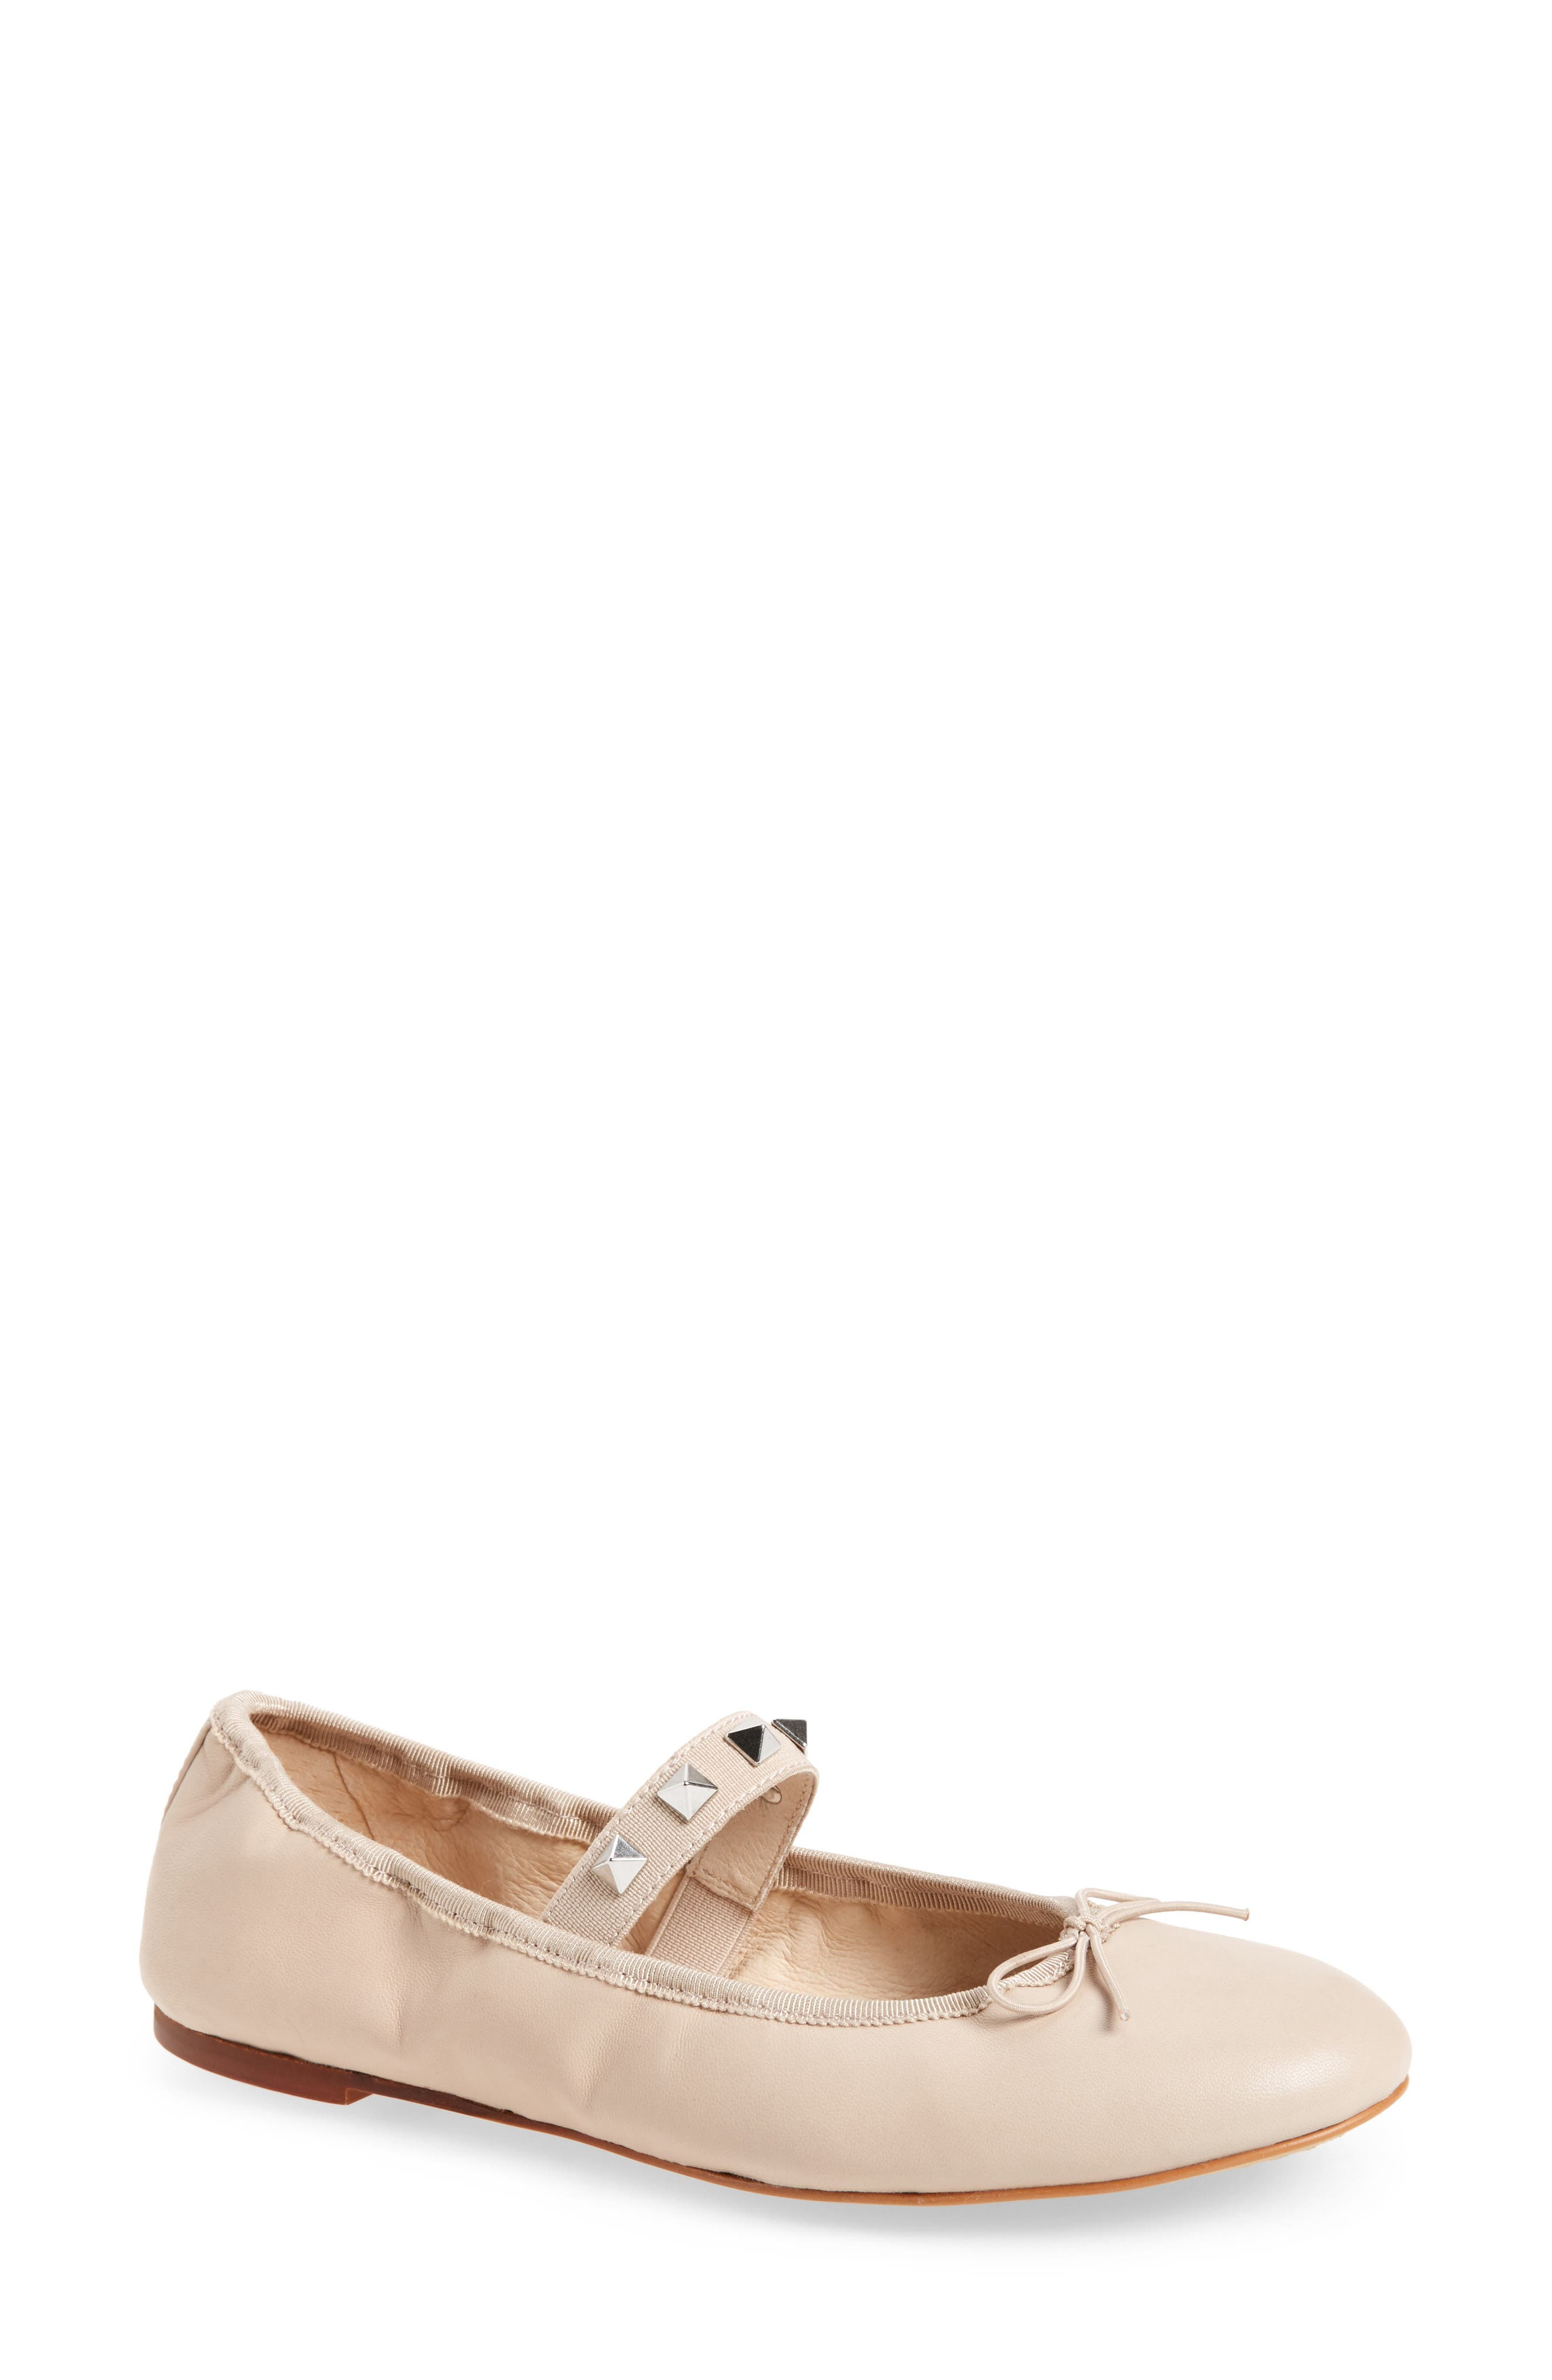 VINCE CAMUTO Prilla Studded Ballet Flat